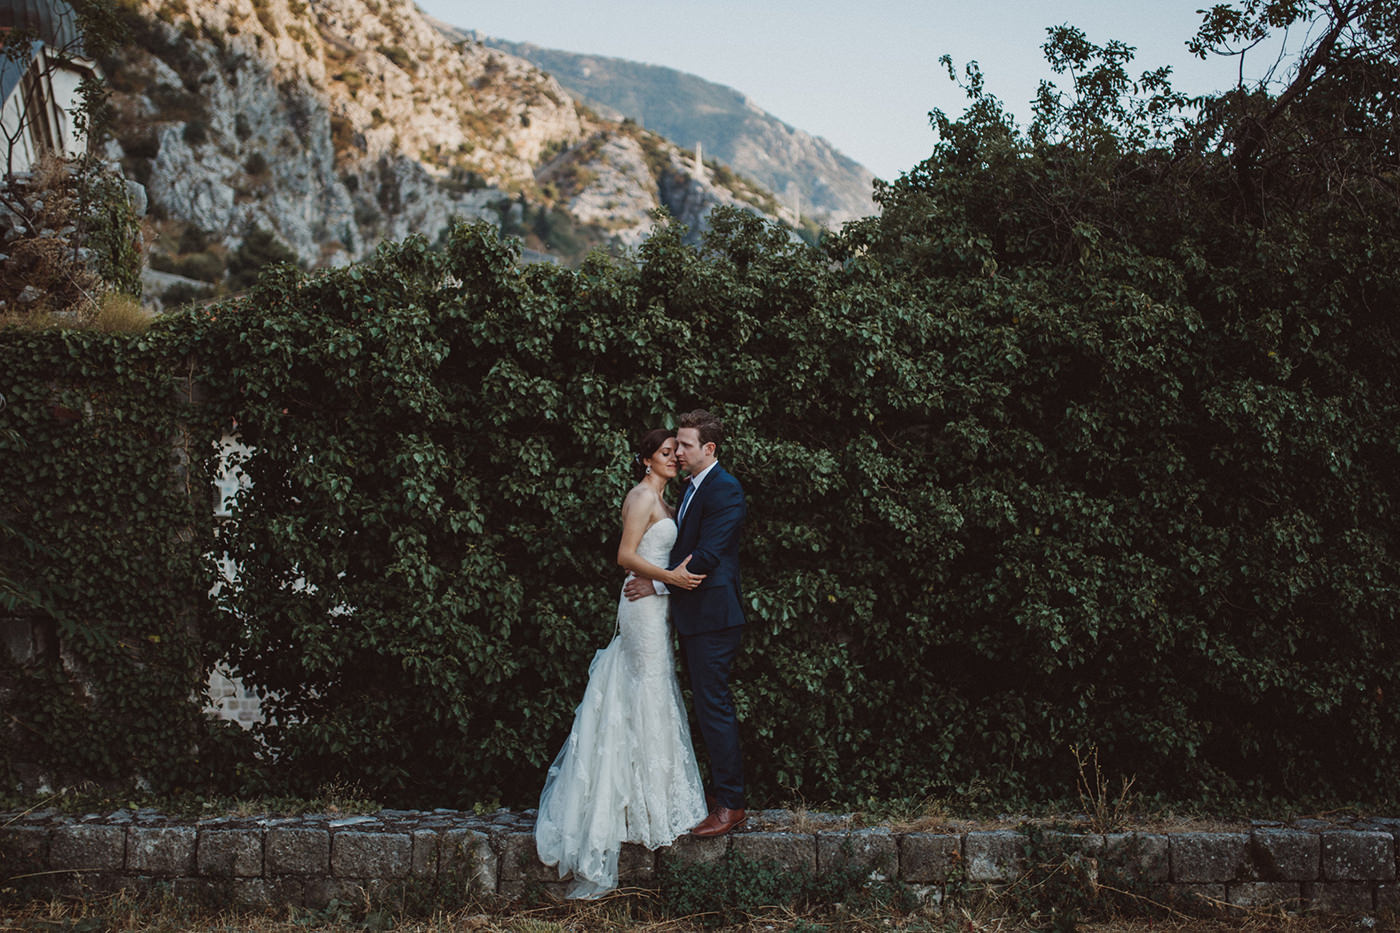 irena-ryan-destination-wedding-photographer-montenegro-kotor-0132